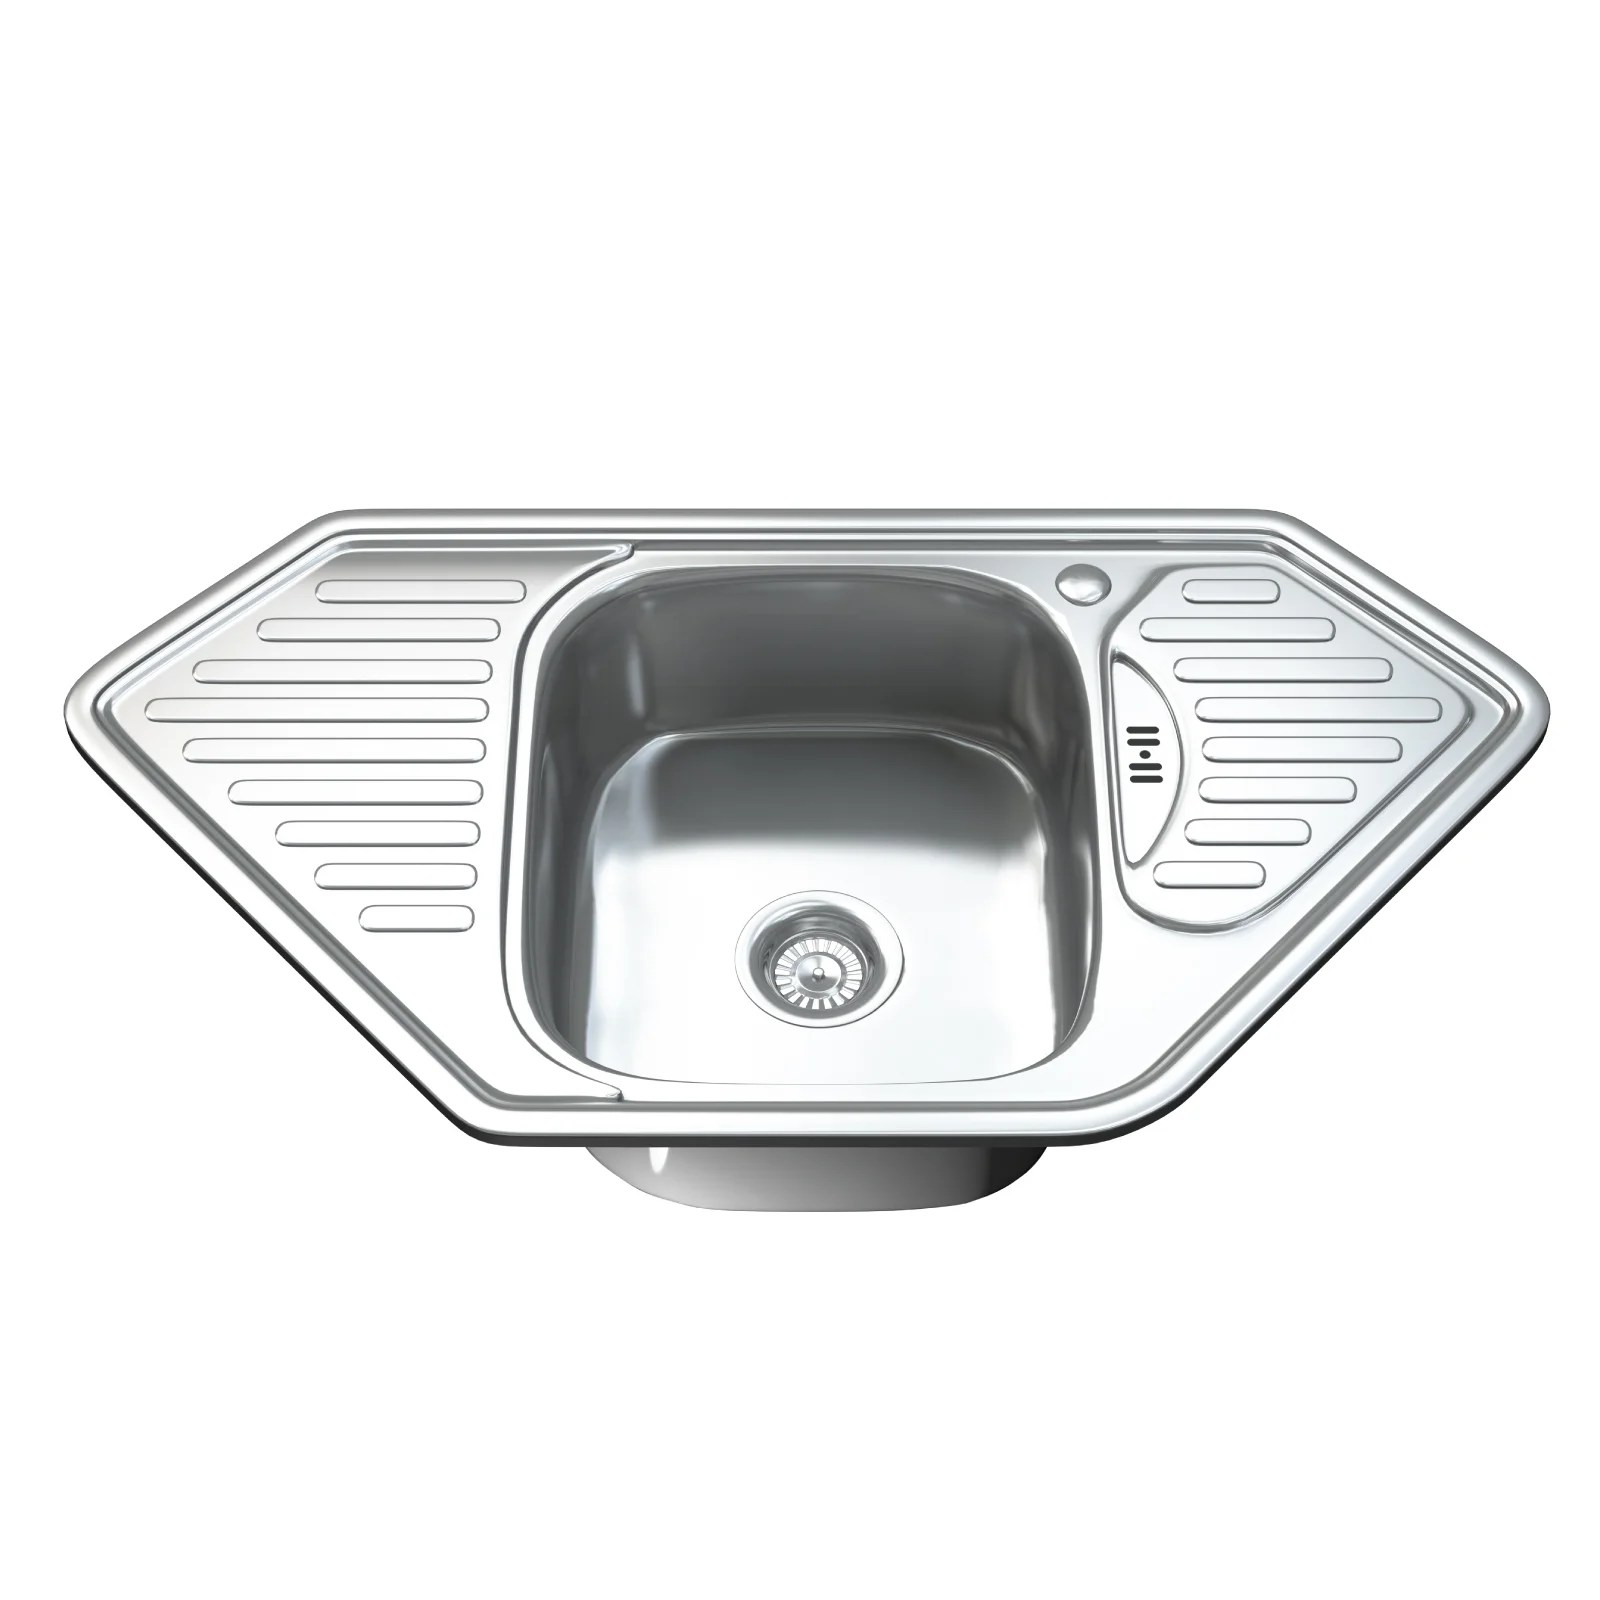 stainless steel kitchen sink reviews cart with stools dihl 95cm x 50cm and